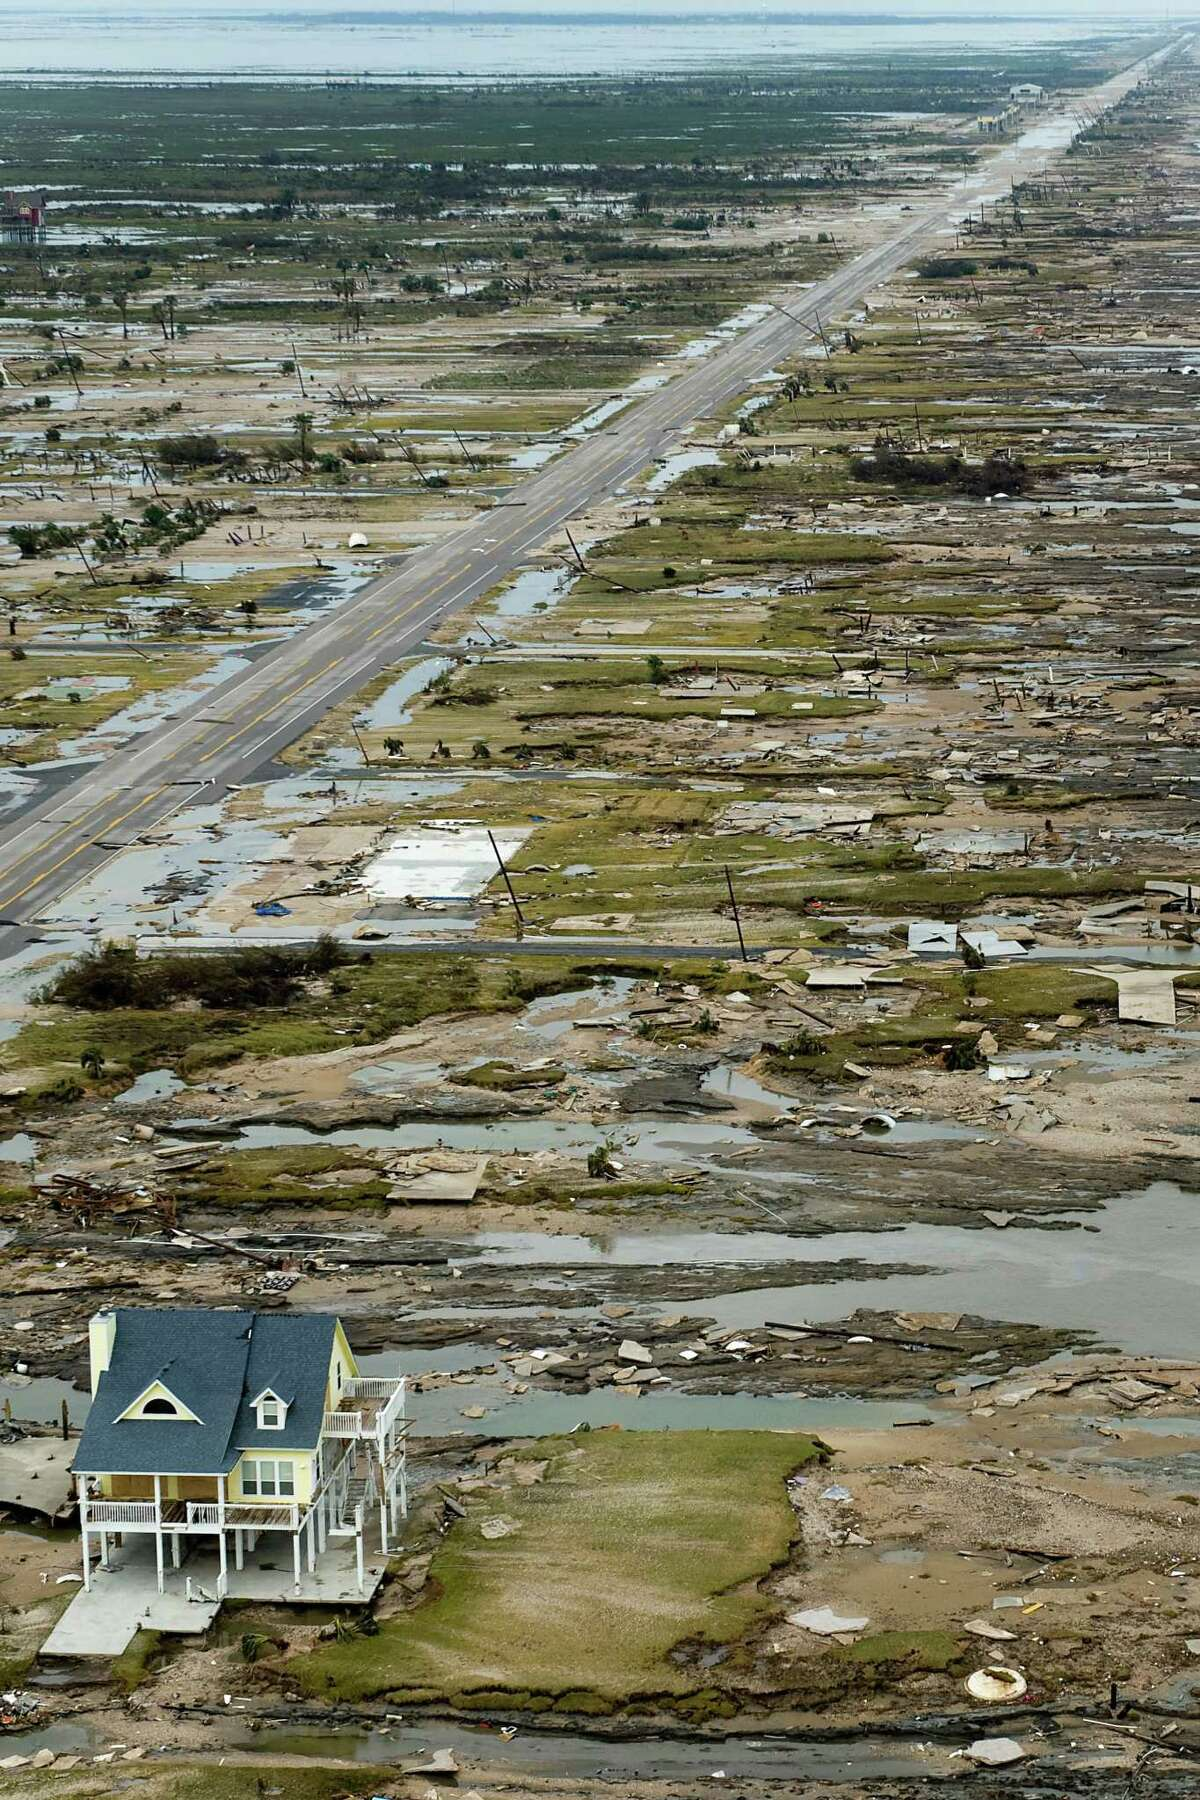 A single house was left standing amid the devastation left by Hurricane Ike, Sunday, Sept. 14, 2008, in Gilchrist, Texas.